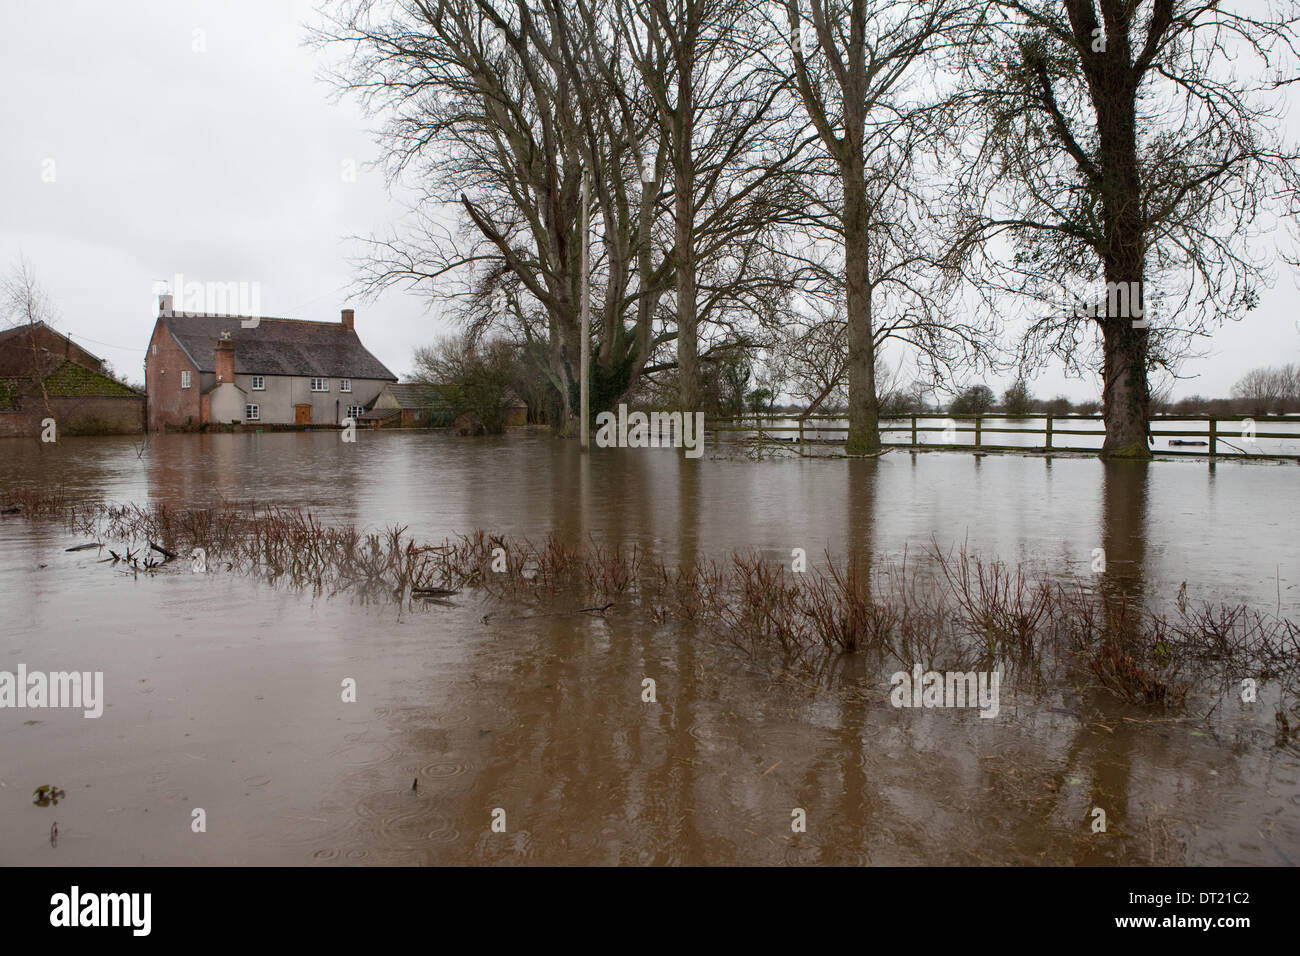 6th February 2014. The evacuation of West Yeo Farm in Moorlands. Local farmers help James Winslade move his cattle to higher ground as his land in submerged in flood water. This house belongs to his parents and is 200 years old. It stands on a site which has been built on since the doomsday book. Credit:  Emma Stoner/Alamy Live News - Stock Image